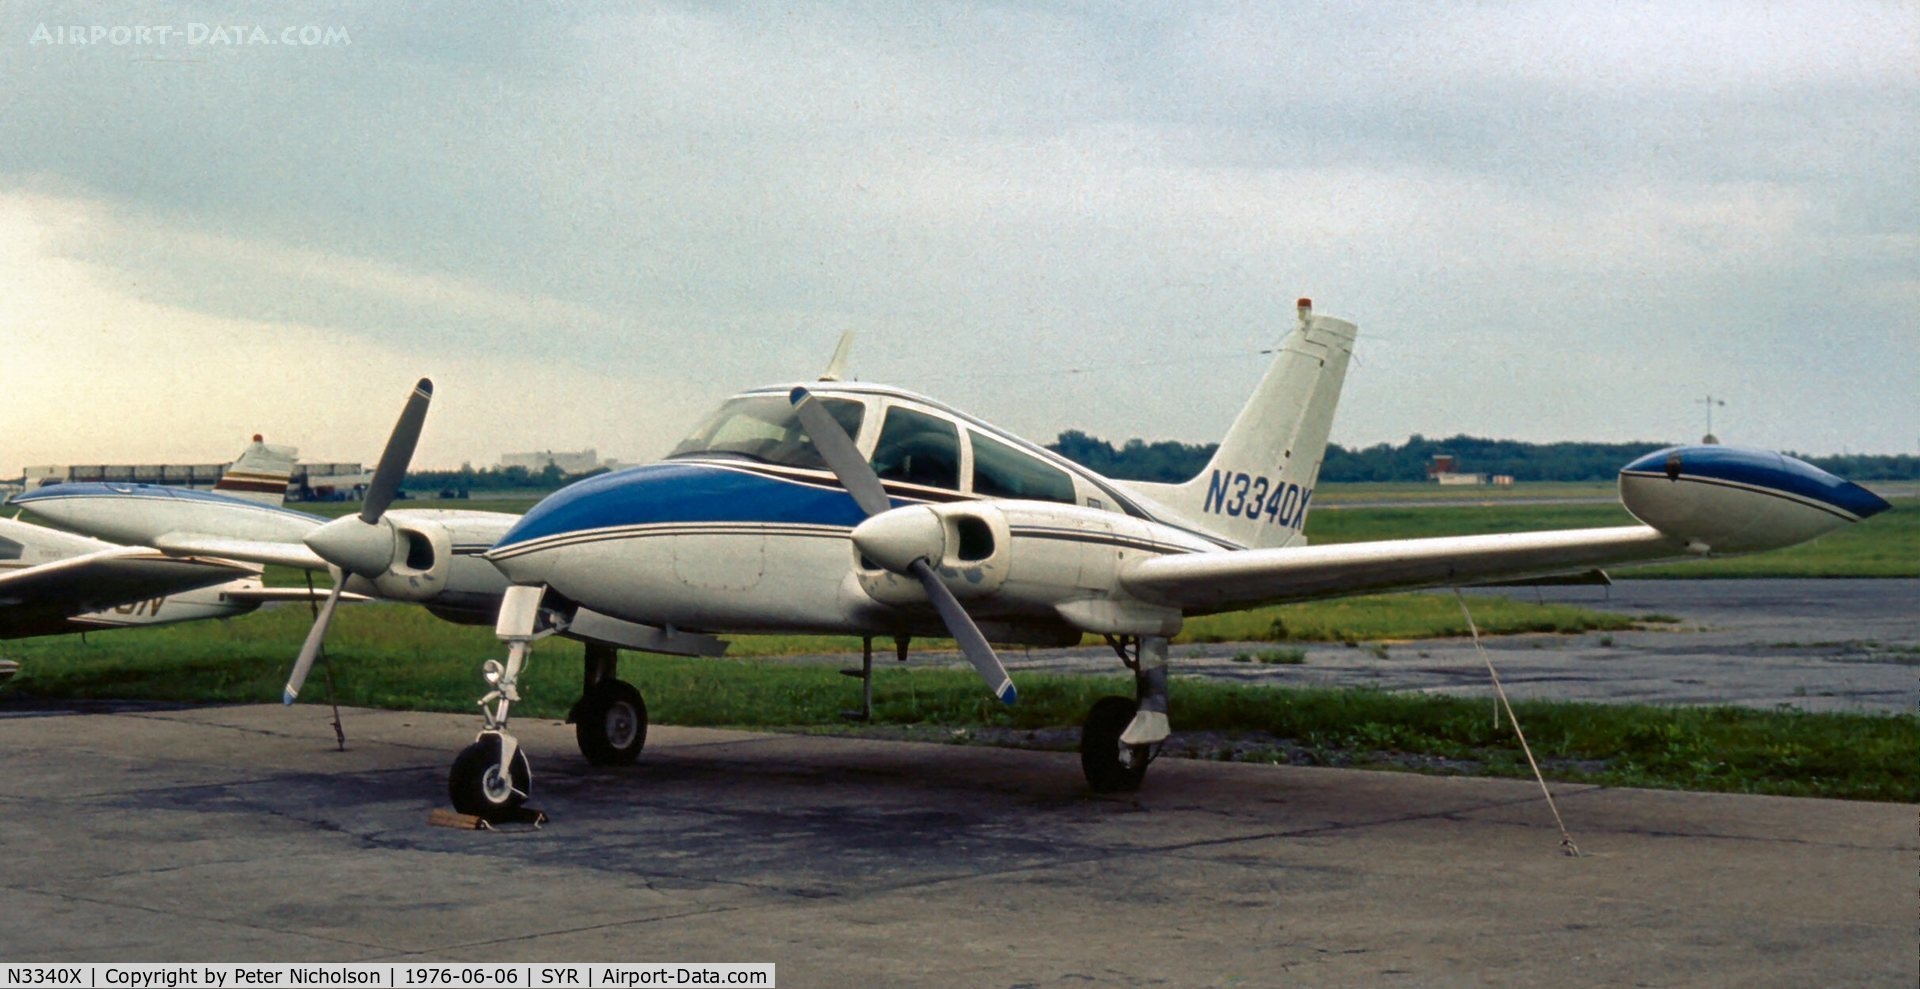 N3340X, 1967 Cessna 310L C/N 310L-0190, Parked at Syracuse in 1976